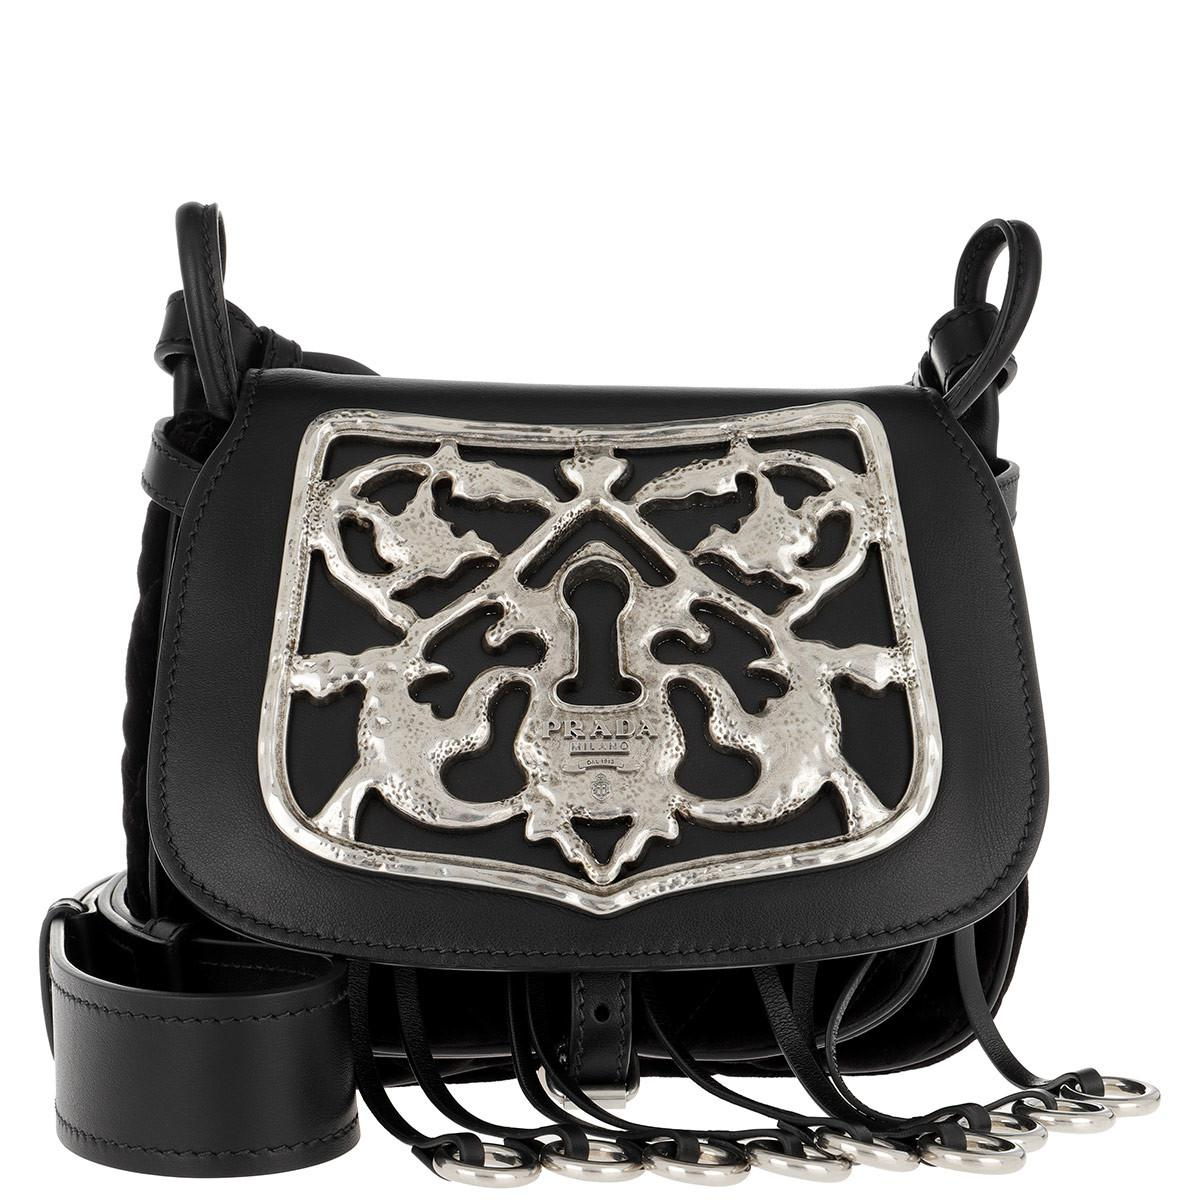 Cross Body Bags - Crosaire Crossbody Bag Black - black - Cross Body Bags for ladies Prada Reliable znkjSe7Wz1